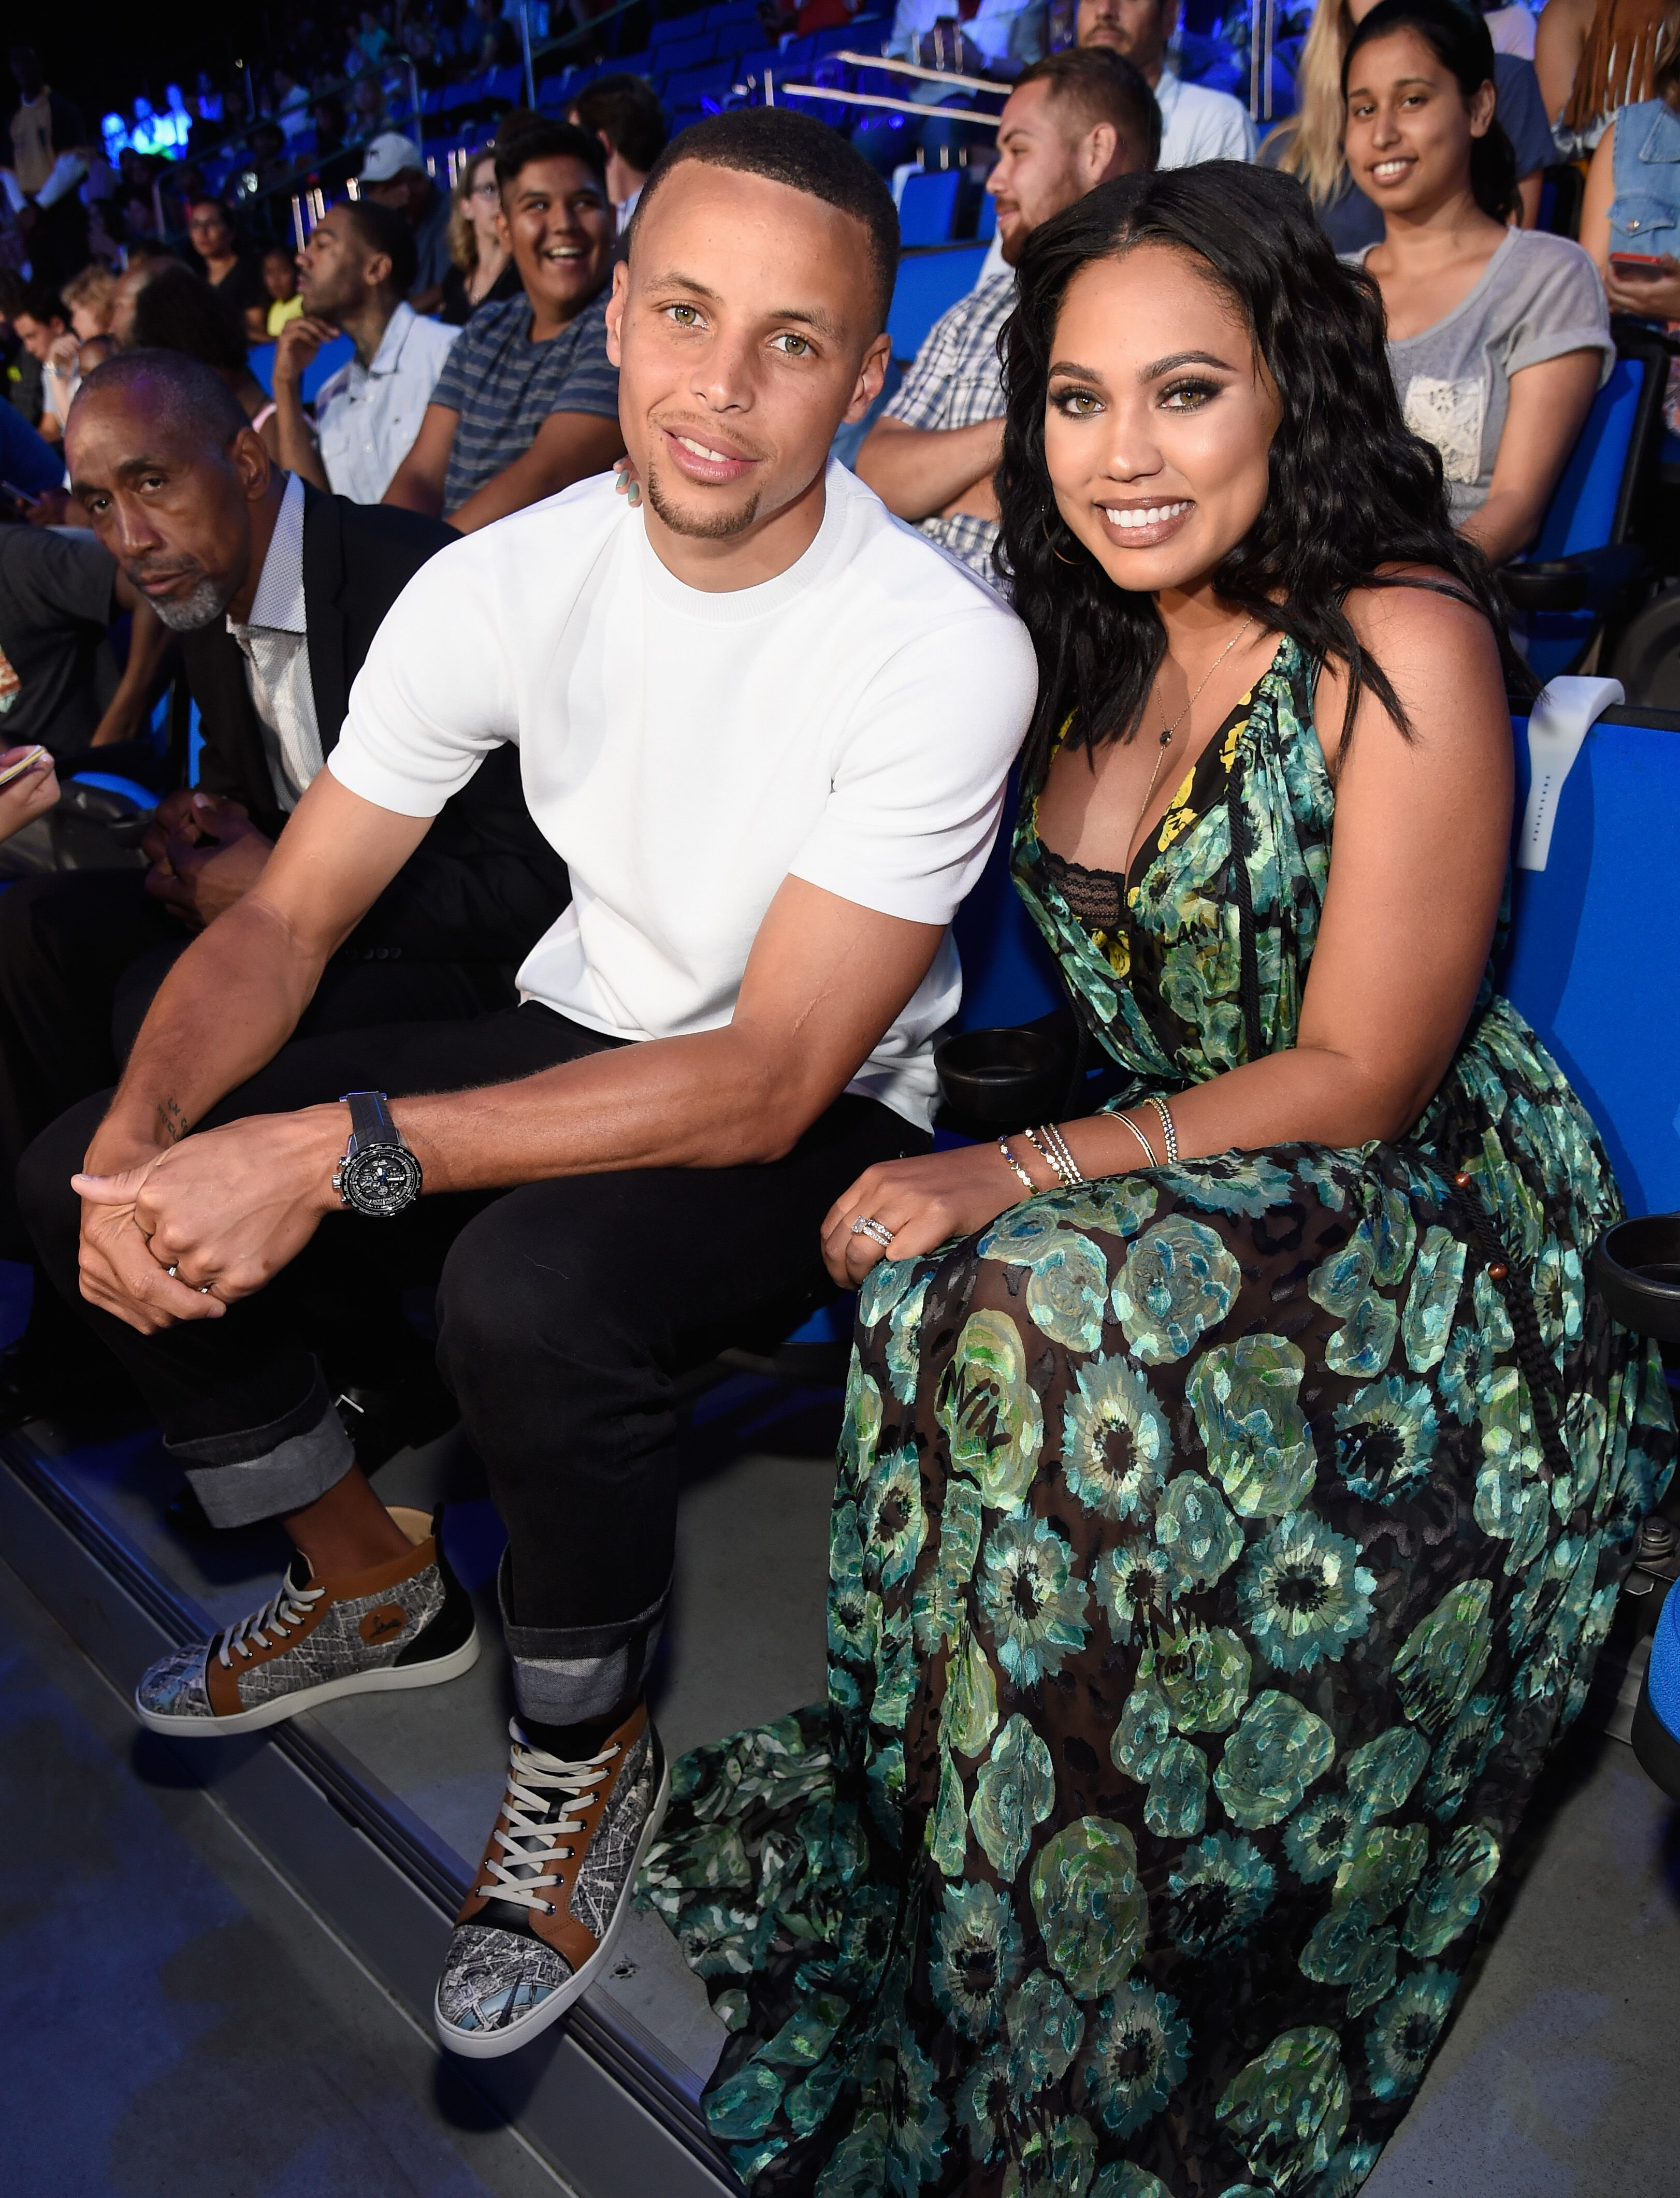 Stephen Curry and Ayesha Curry attend the Nickelodeon Kids' Choice Sports Awards 2016 at UCLA's Pauley Pavilion on July 14, 2016. | Source: Getty Images